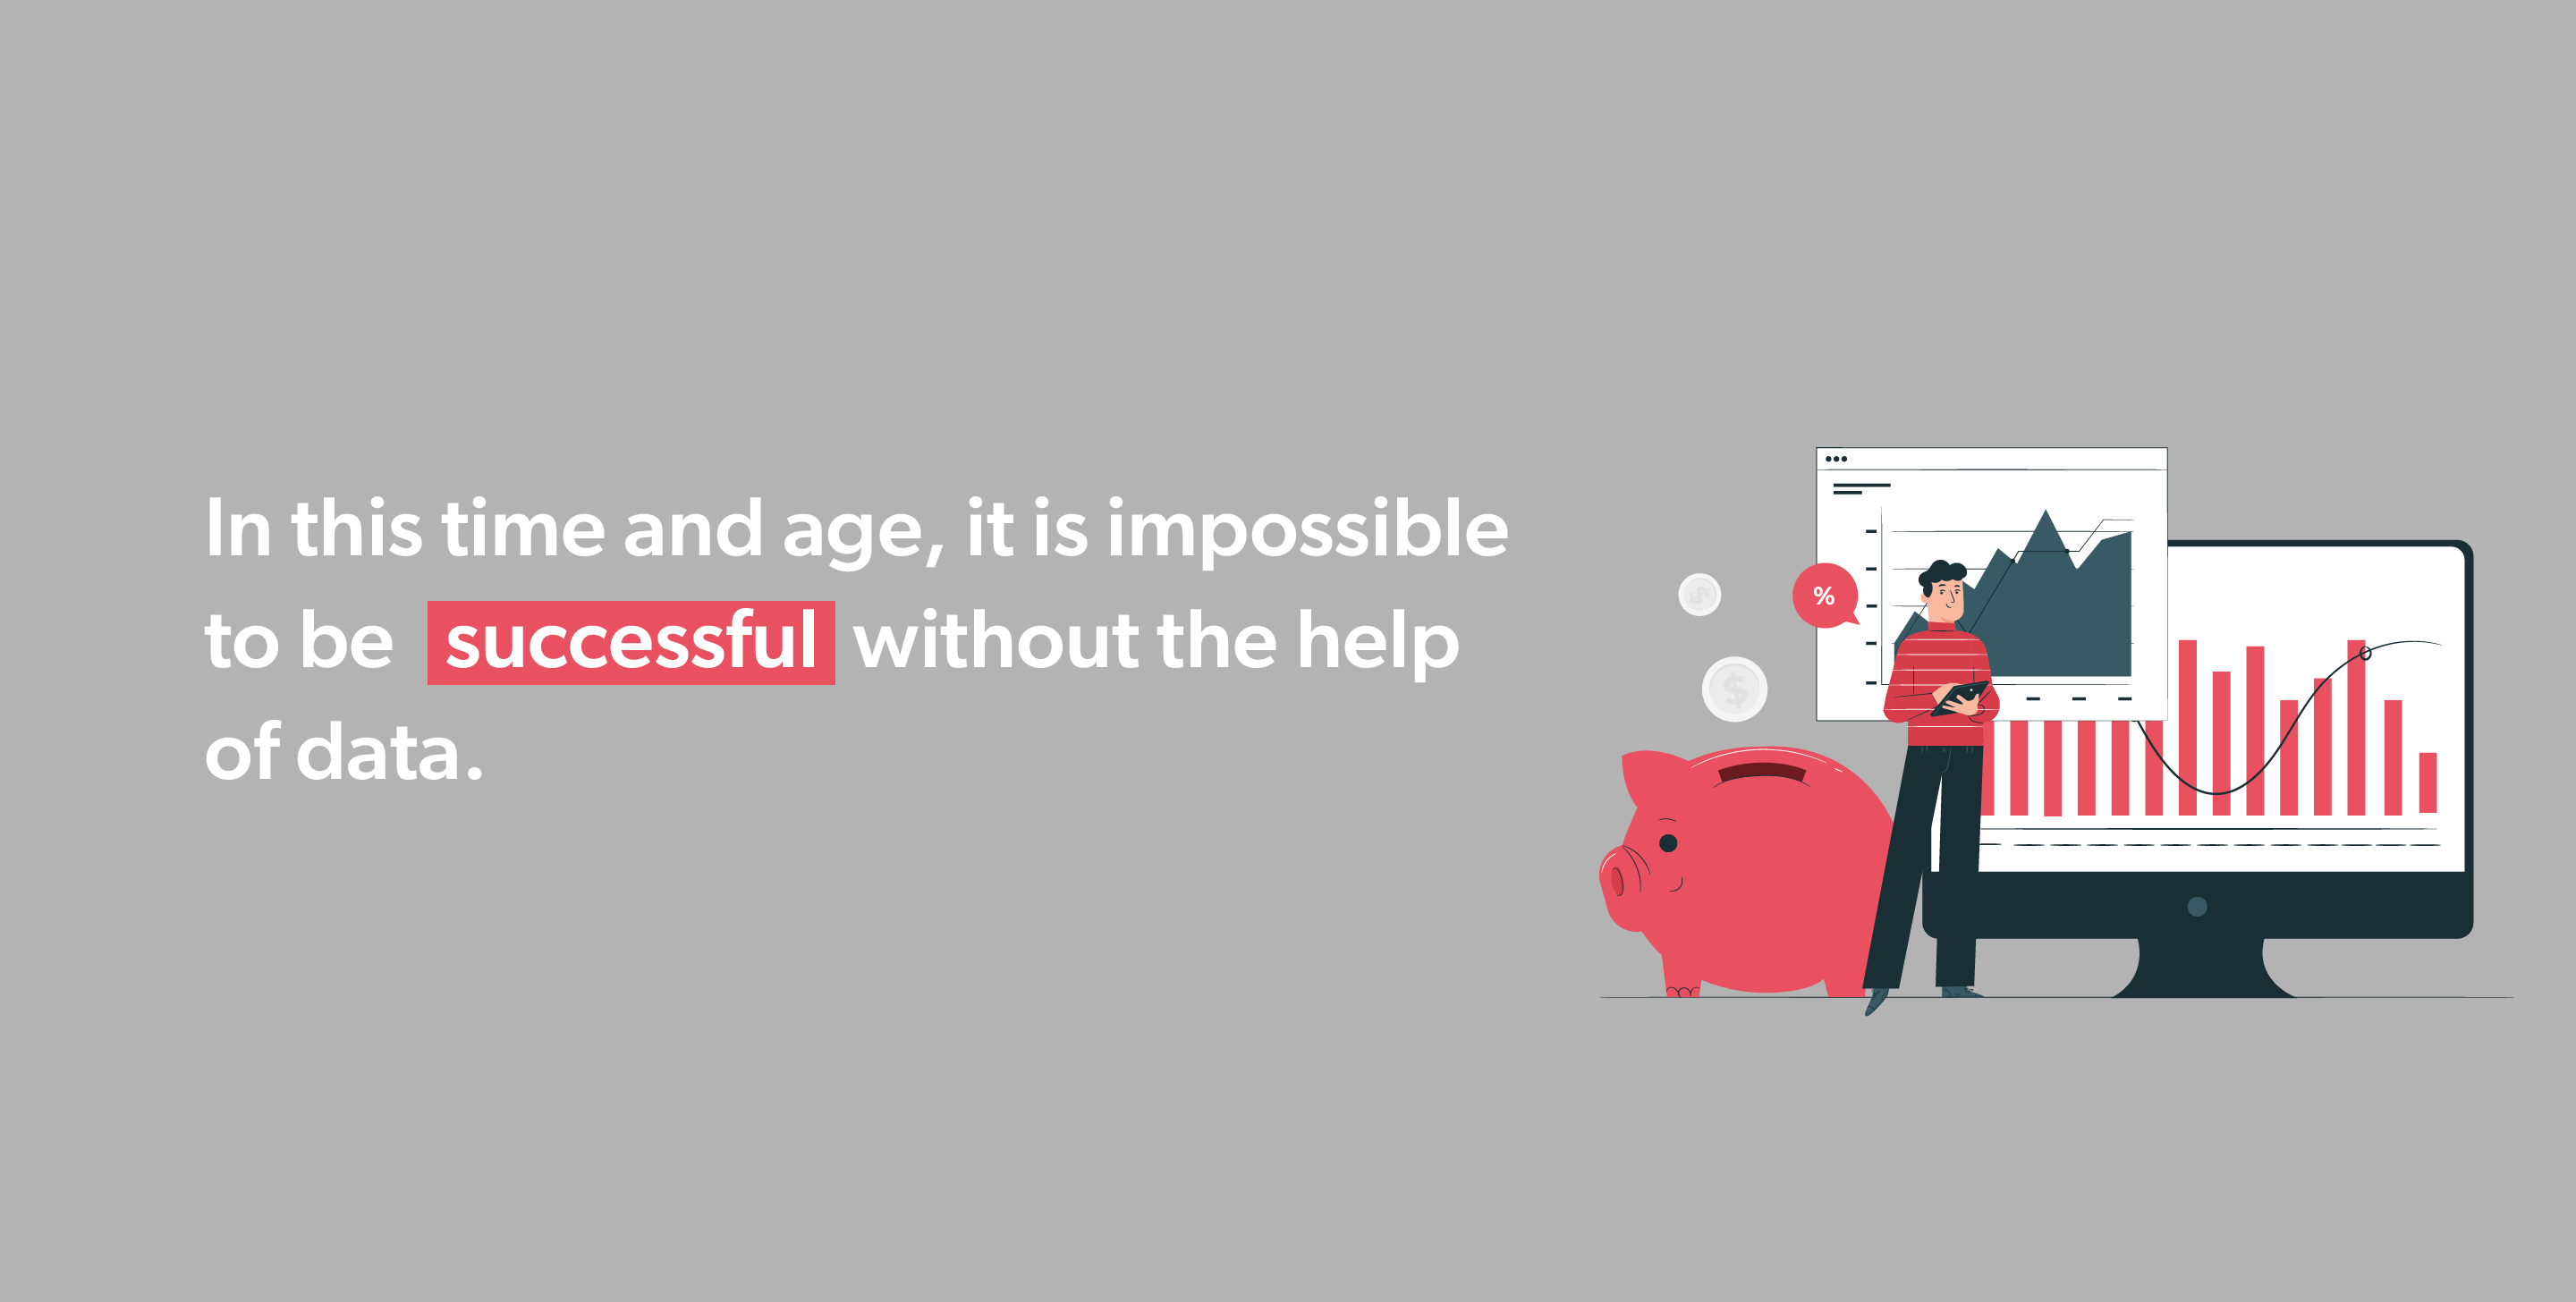 In this time and age, it is impossible to be successful without the help of data.